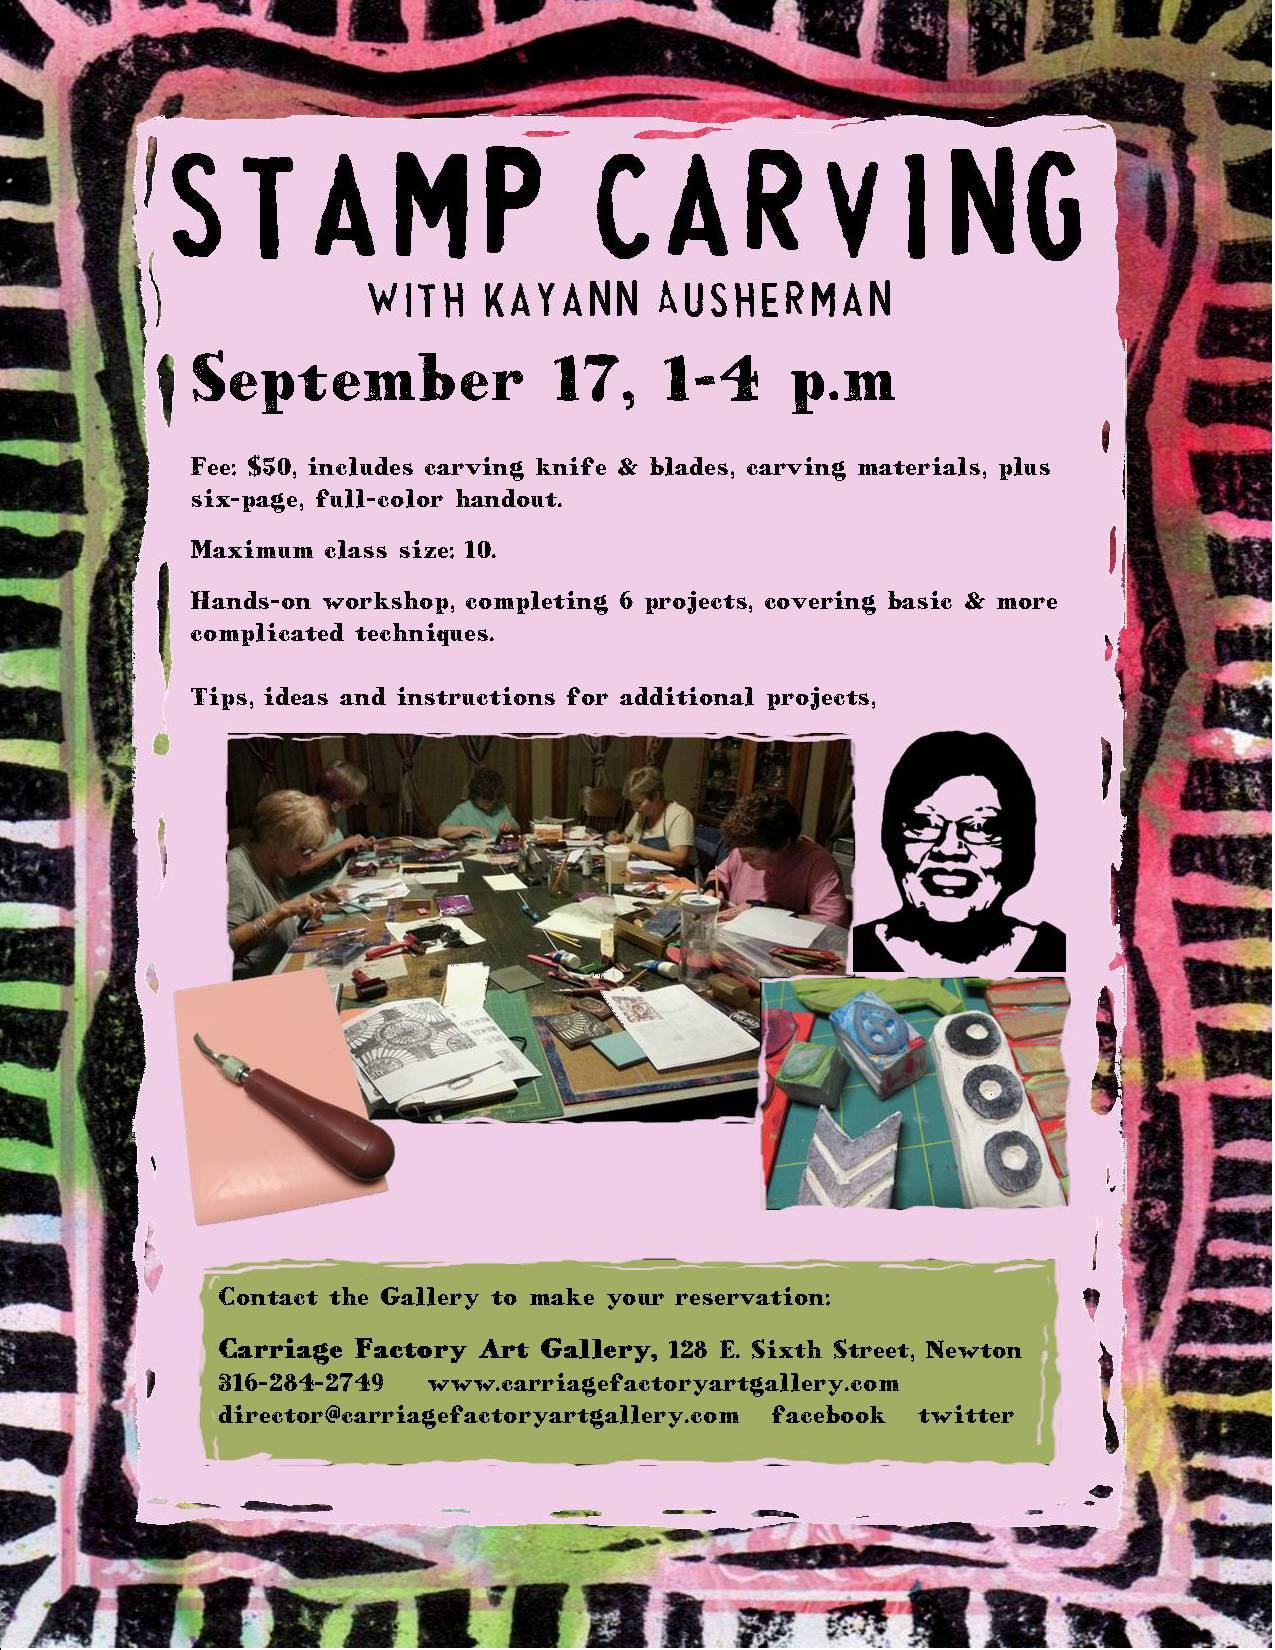 carriage Factory flyer.jpg